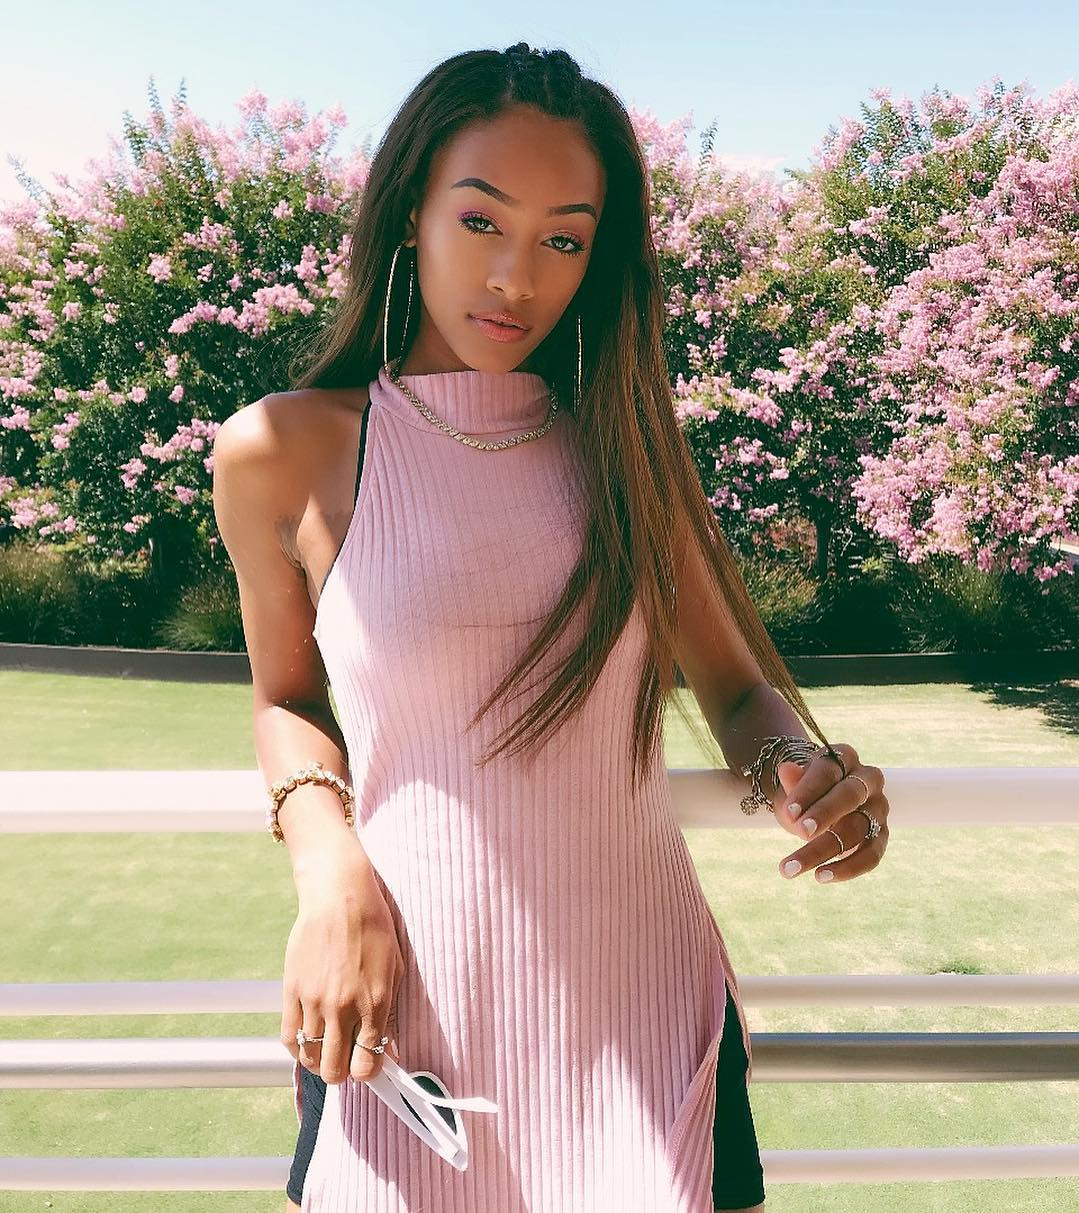 Kiara Divina is a model that appeared in Tyga ft Rich The Kid G-Eazy Girls Have Fun